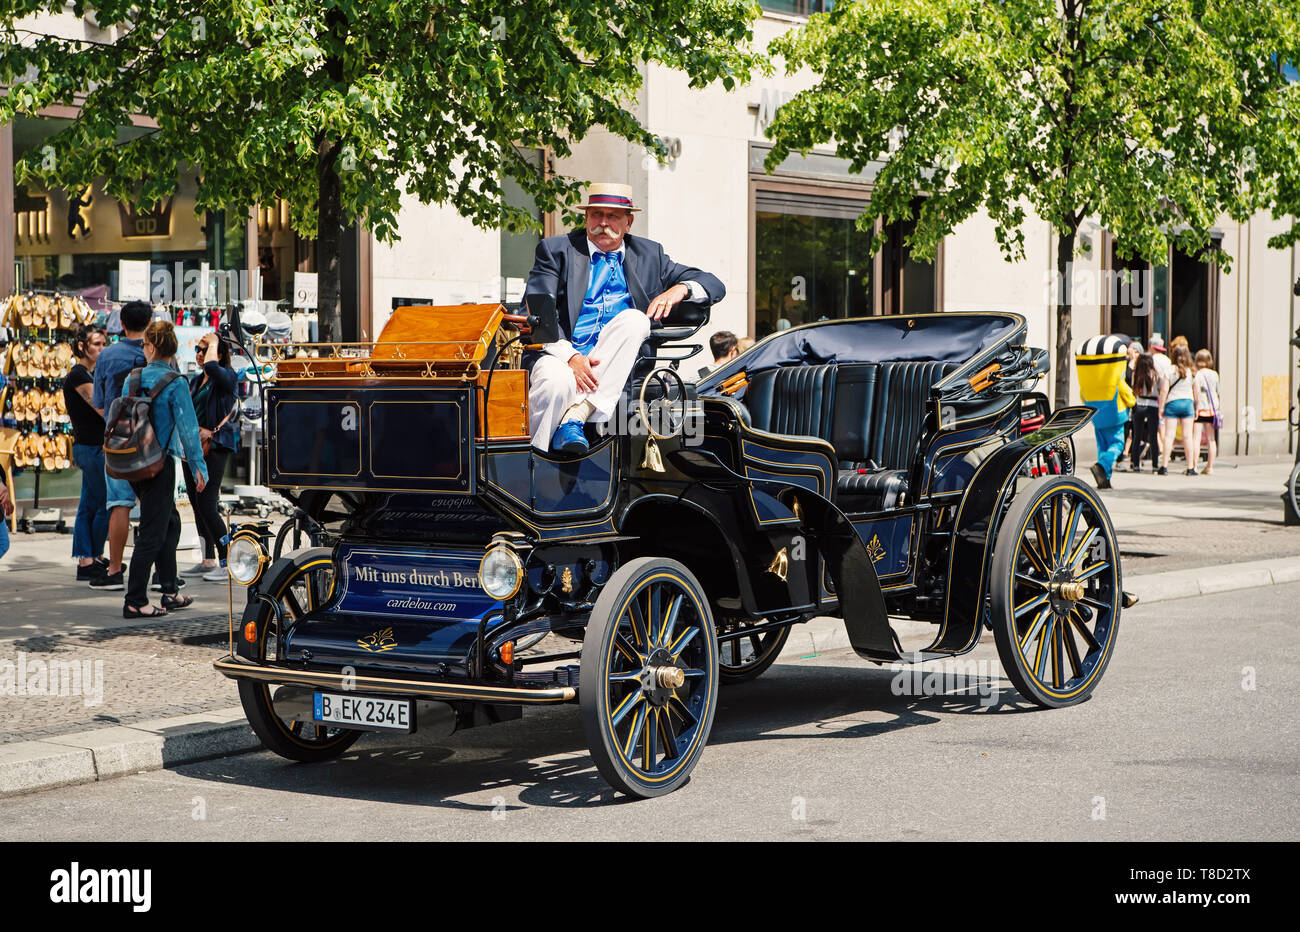 Berlin, Germany - May 31, 2017: man sitting in vintage car parked in city street road. Retro transport concept. Travelling and lifestyle - Stock Image